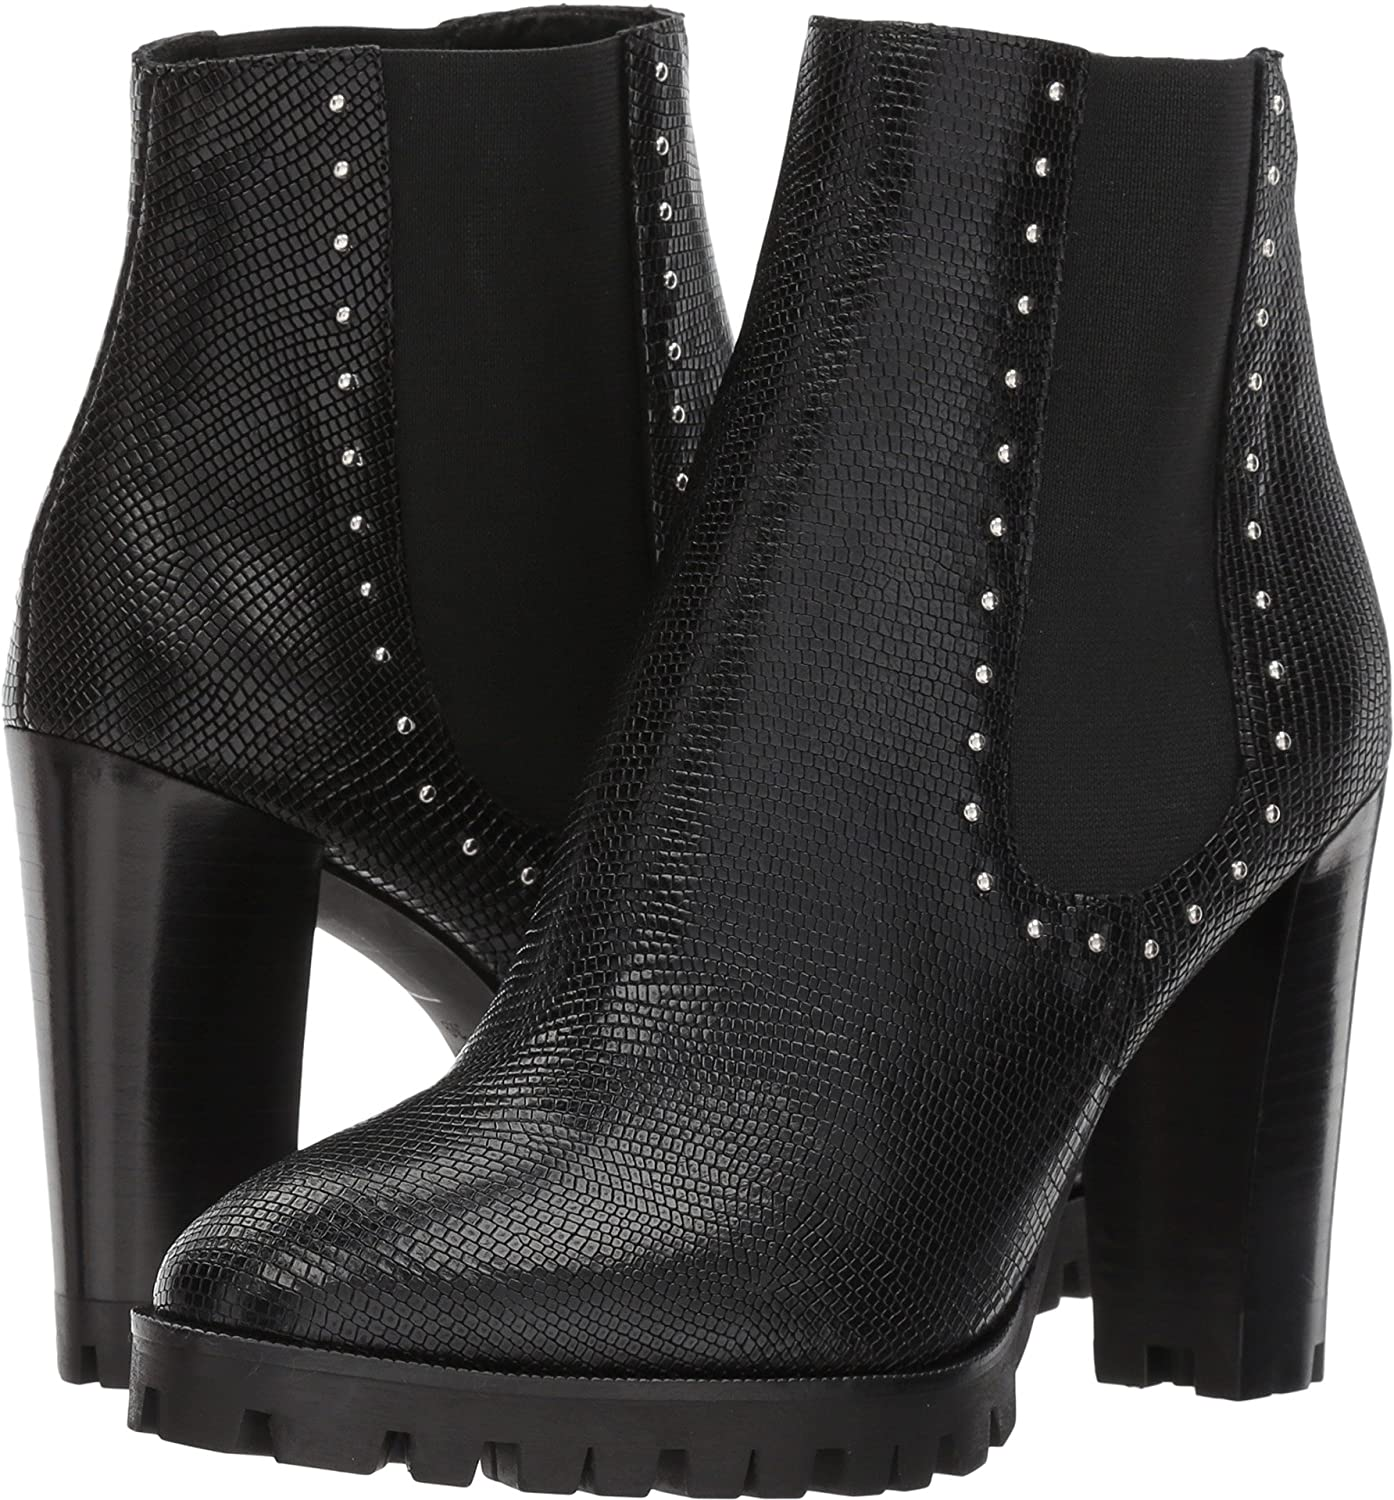 7178d8b4463 Amazon.com | The Kooples Women's Reptile-Effect Leather Boots with Studs  Black 35 M EU | Shoes